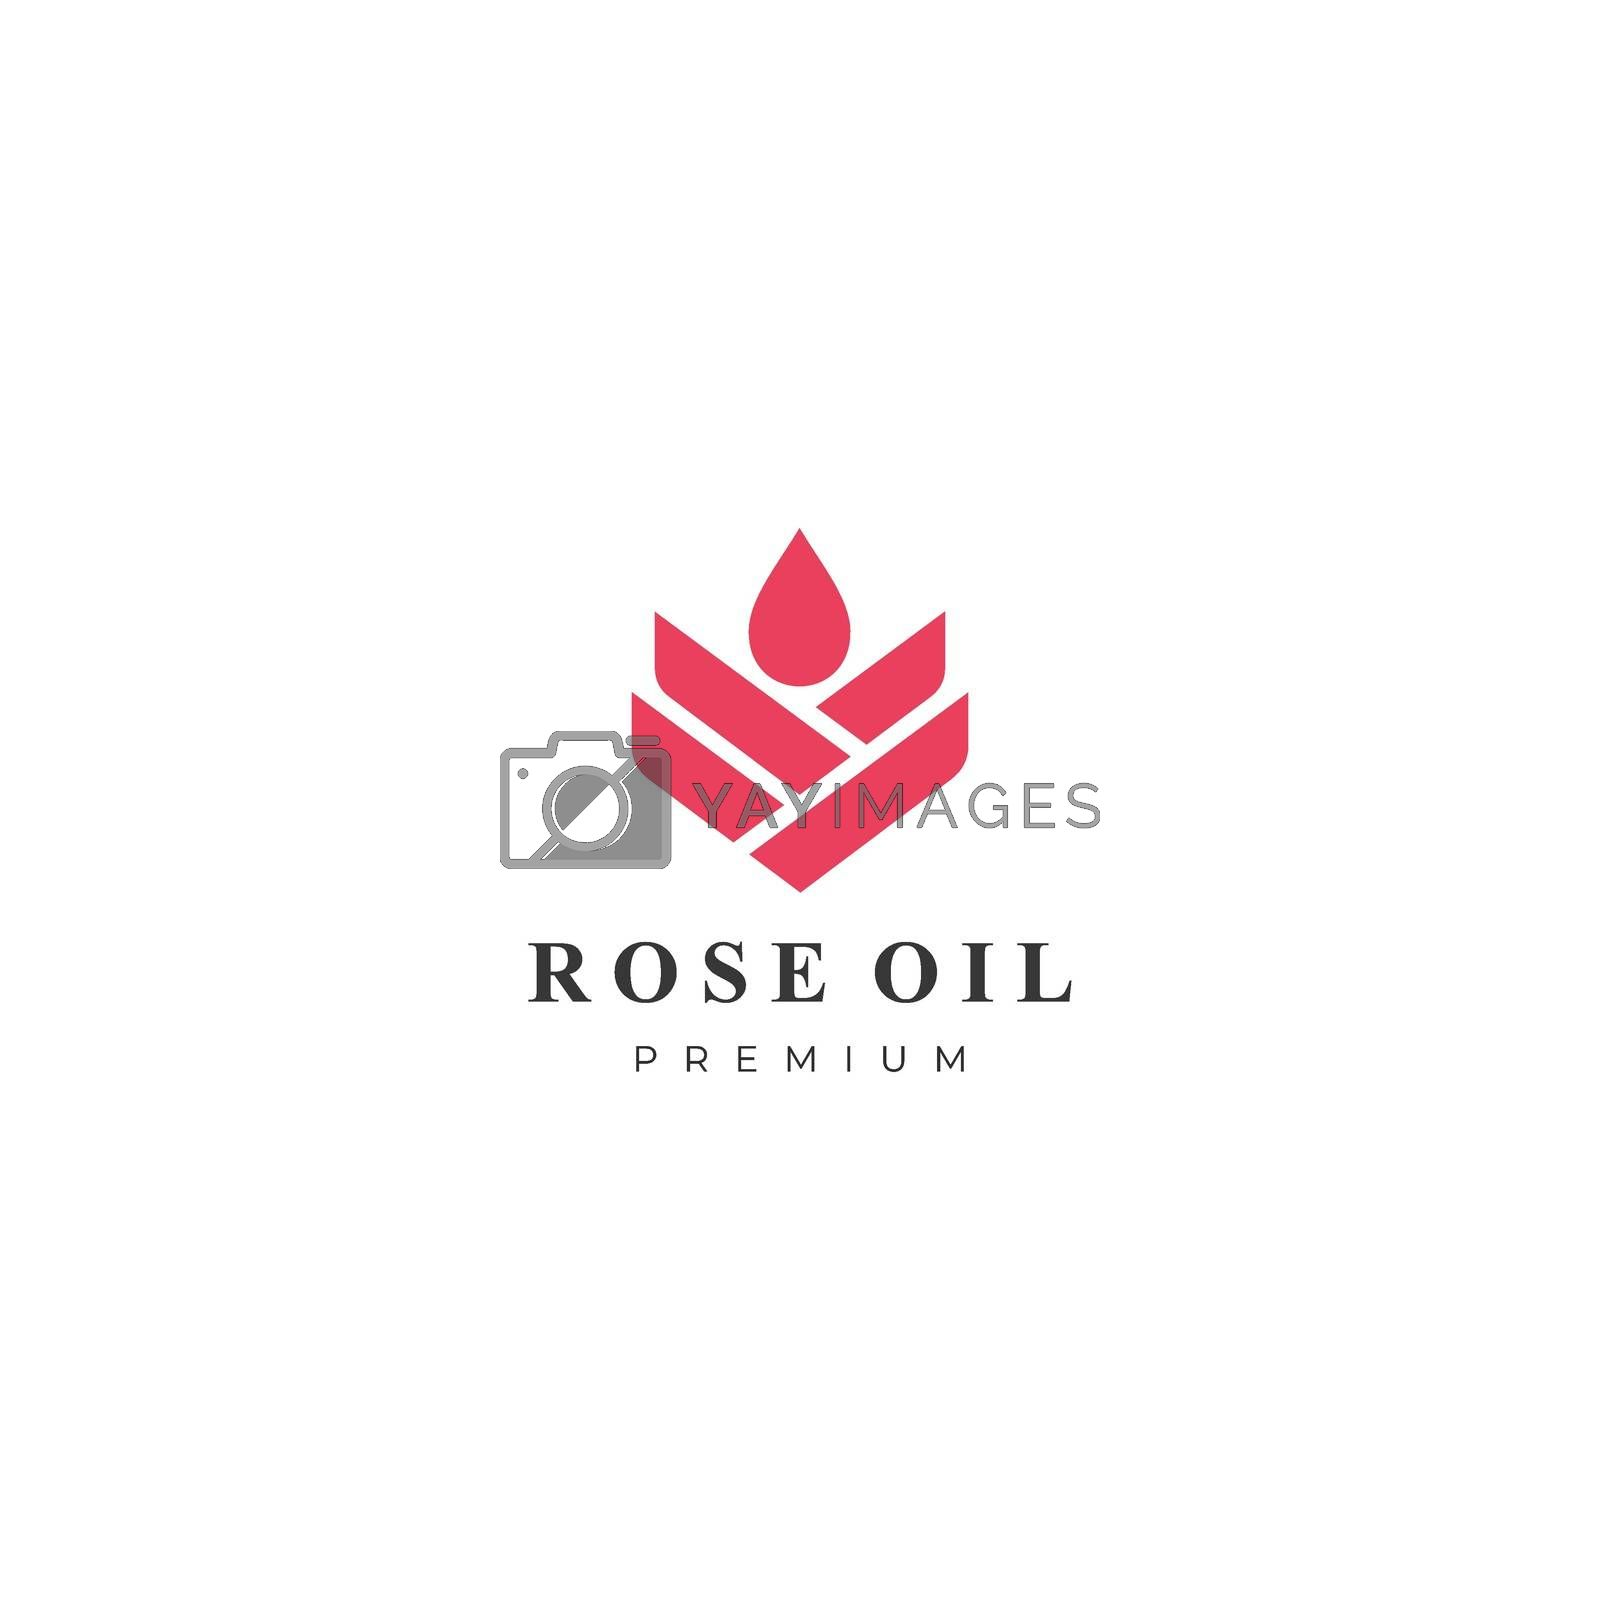 rose oil modern logo vector illustration. flat geometric design. isolated on white background.